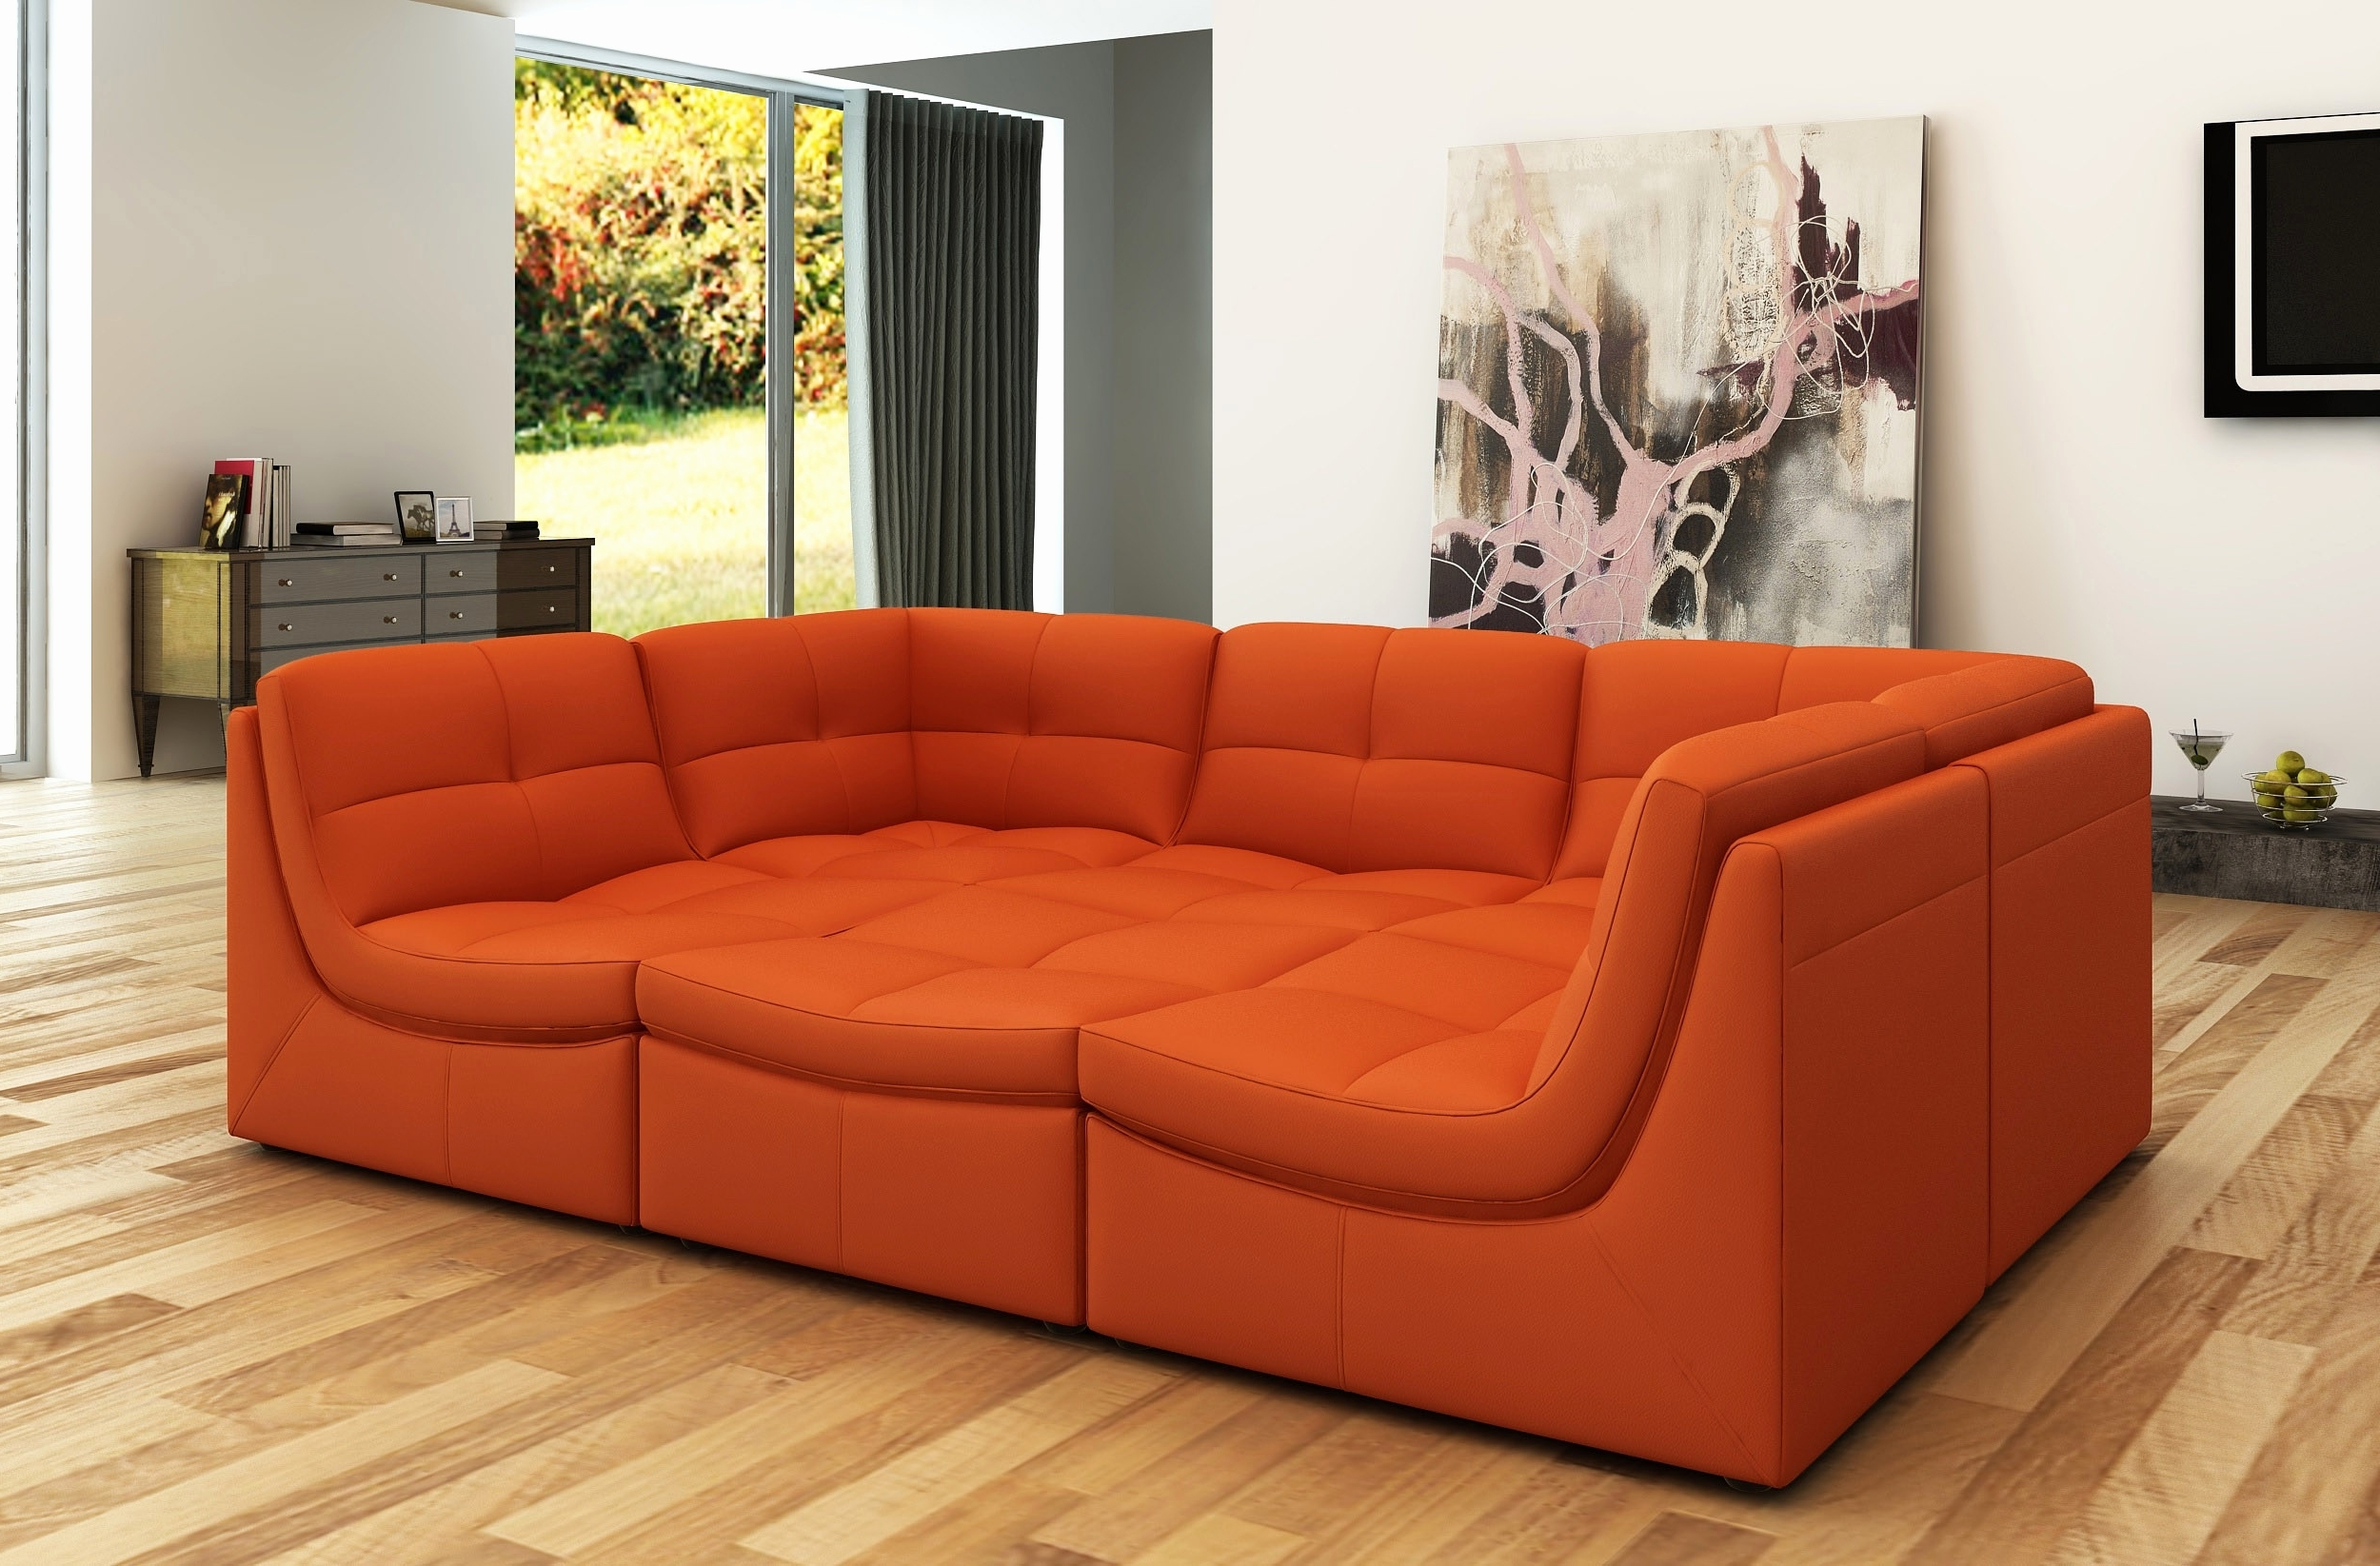 Current Best Leather Modular Couch 2018 – Couches And Sofas Ideas Regarding Des Moines Ia Sectional Sofas (View 3 of 20)